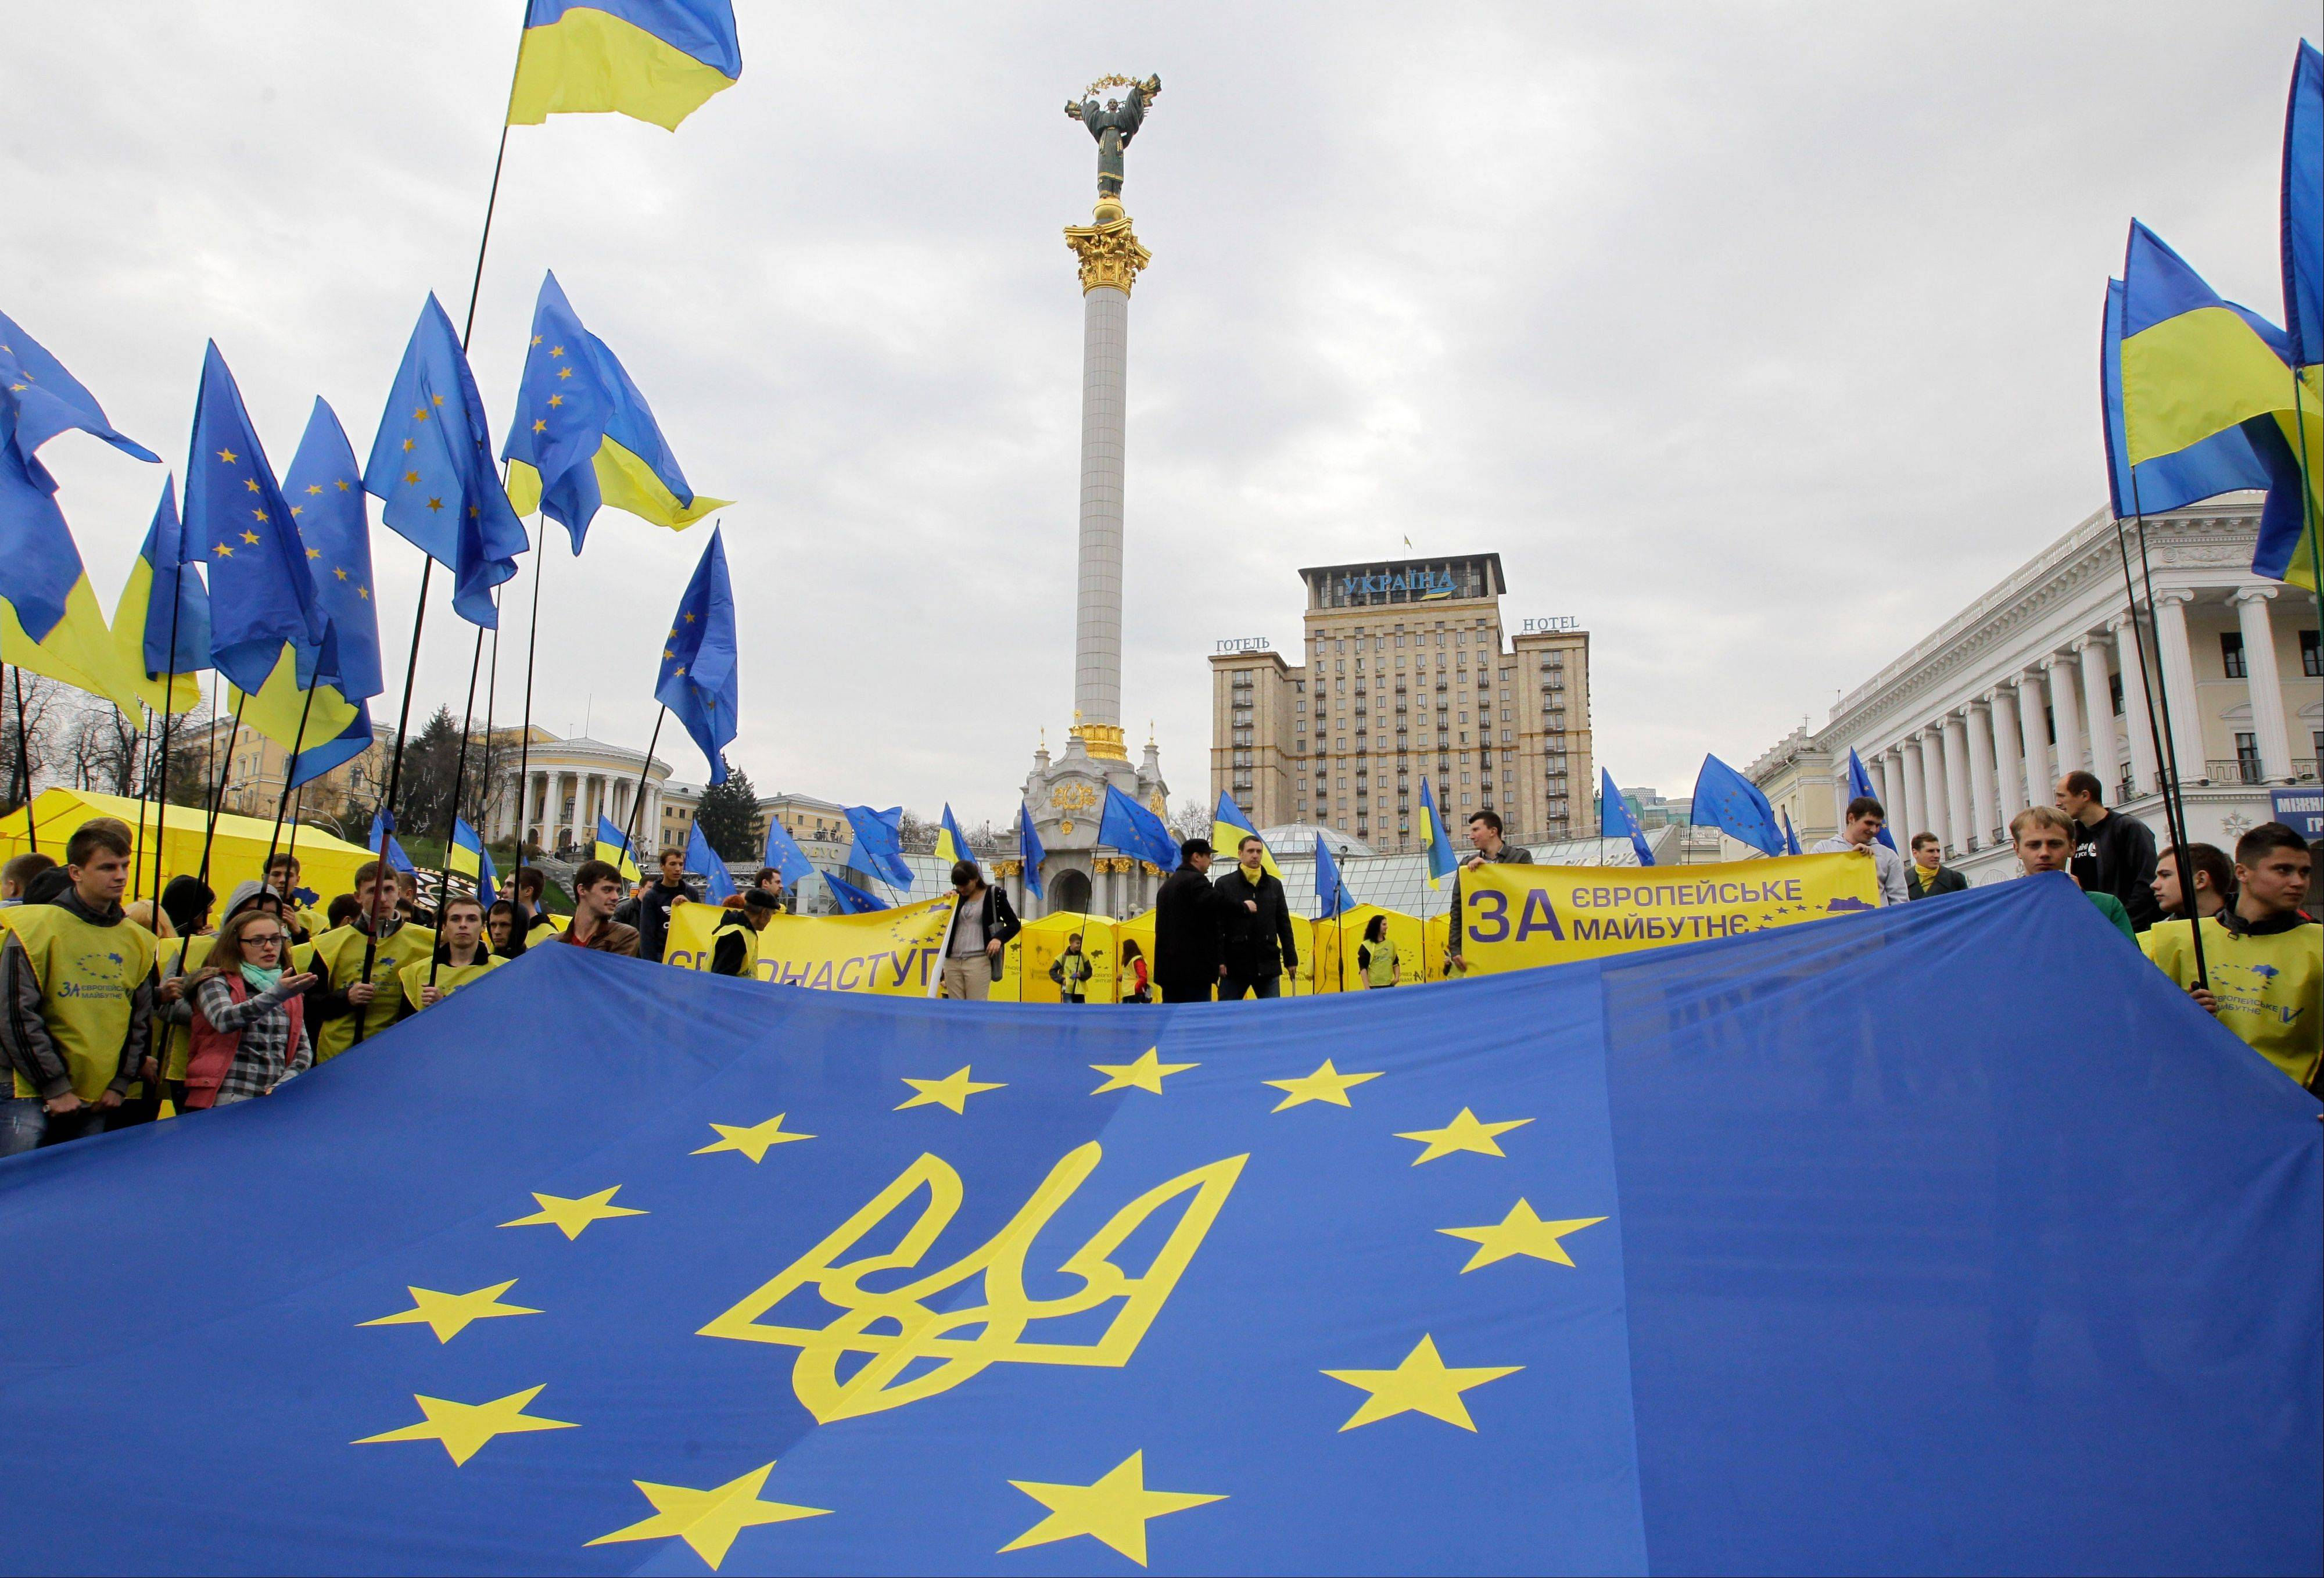 "Activists rally in the center of Kiev, Ukraine, in support of Ukraine's integration with the European Union. More than 20 years after gaining independence from the Soviet Union and painfully searching for its place on the geopolitical map, Ukraine finally has a real chance to firmly align itself with the EU, with its democratic standards and free-market zone. The alternative is to slide back into Russia's shadow, both politically and economically. The slogan reads: ""For the European future."""